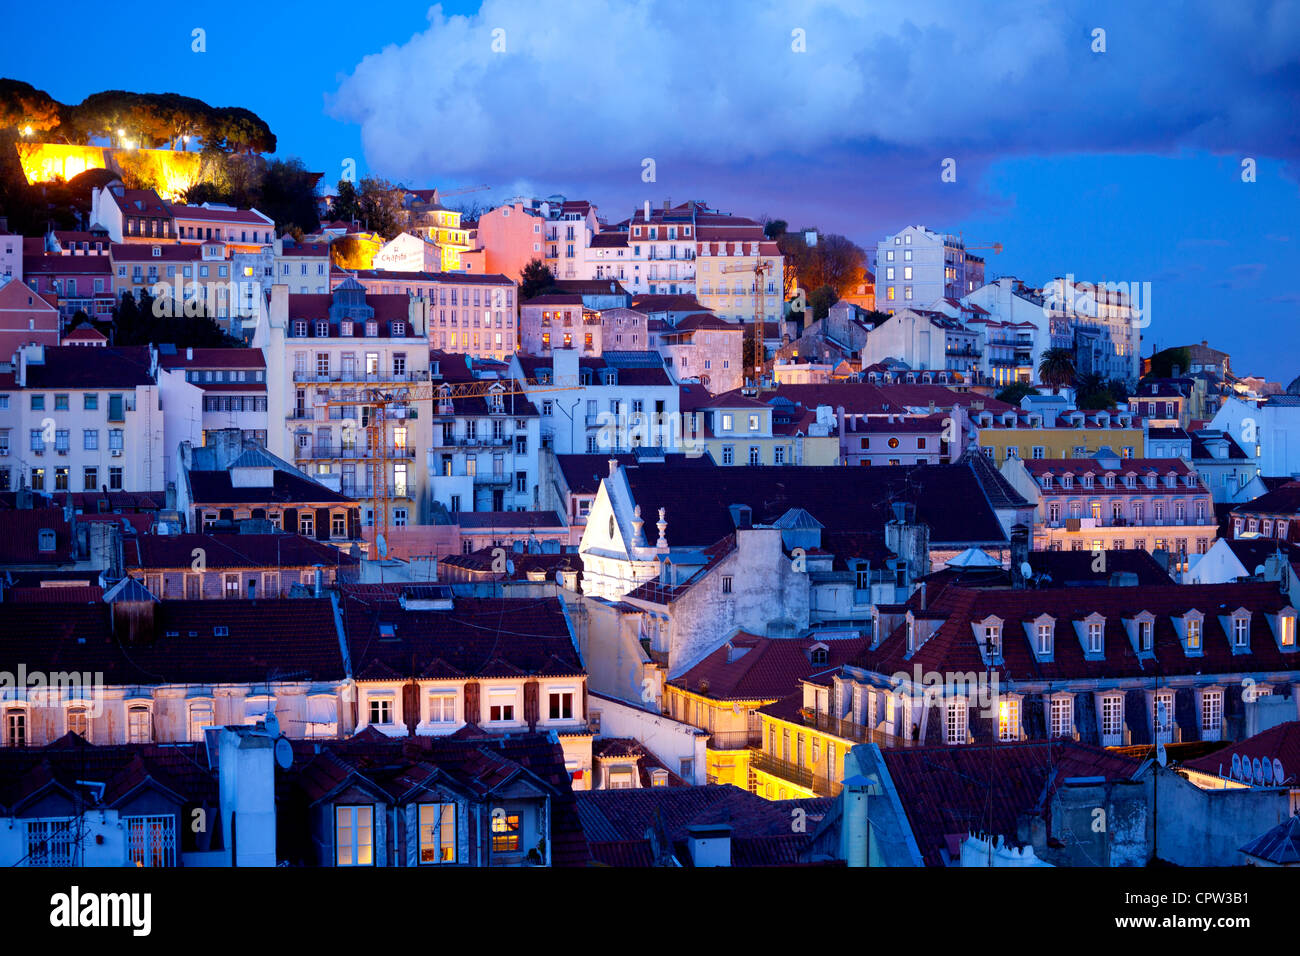 Saint George's Castle and a panorama of Lisbon, Portugal - Stock Image